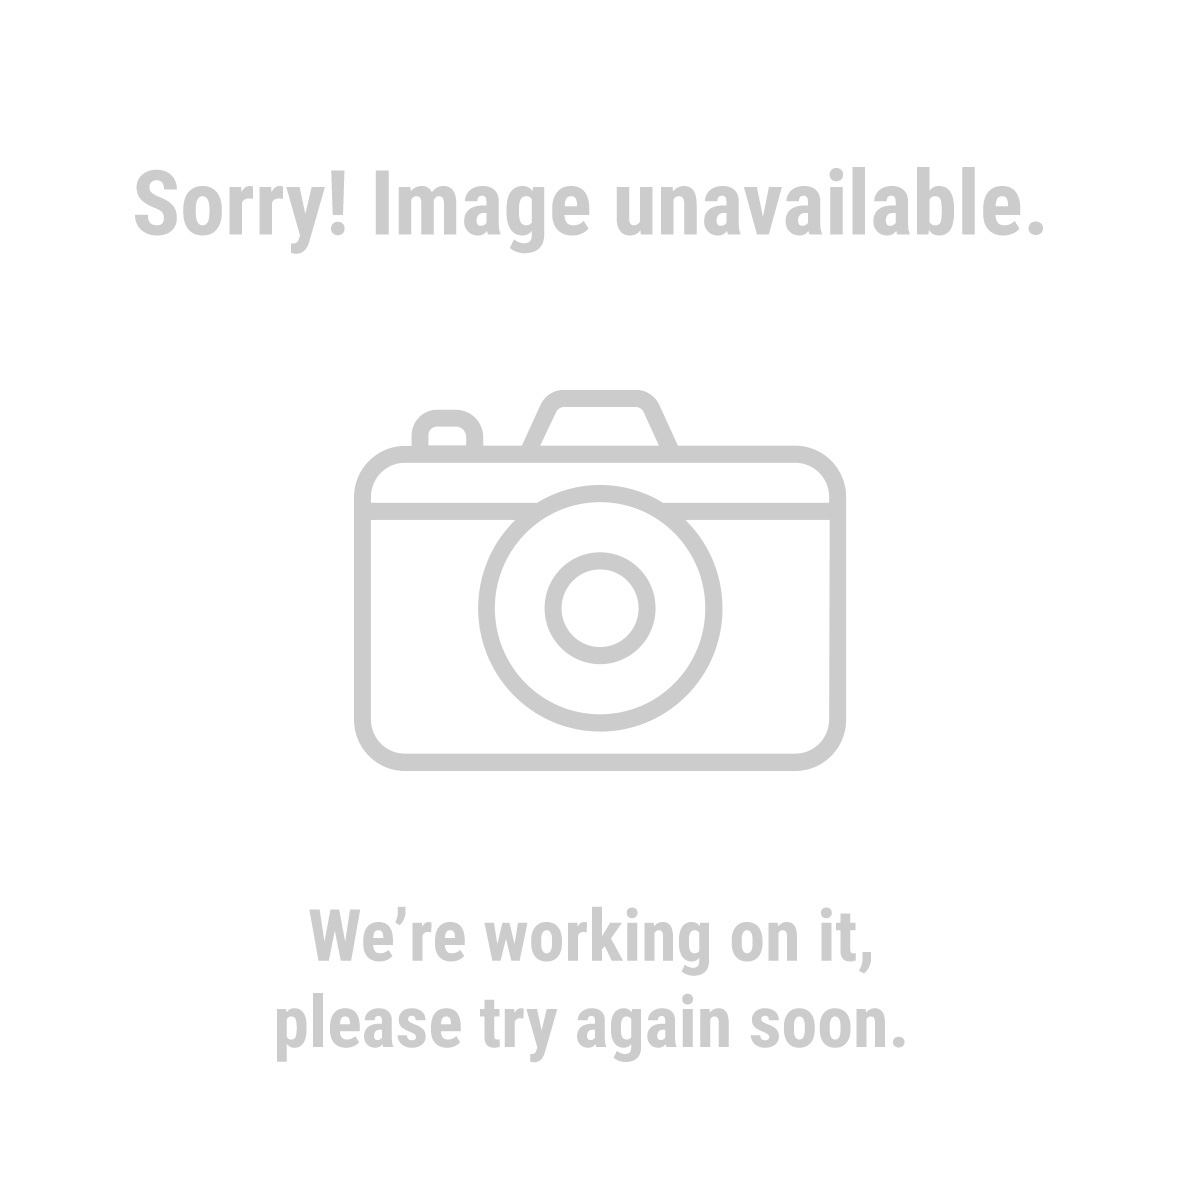 Storehouse 93198 15 Bin Storage Rack